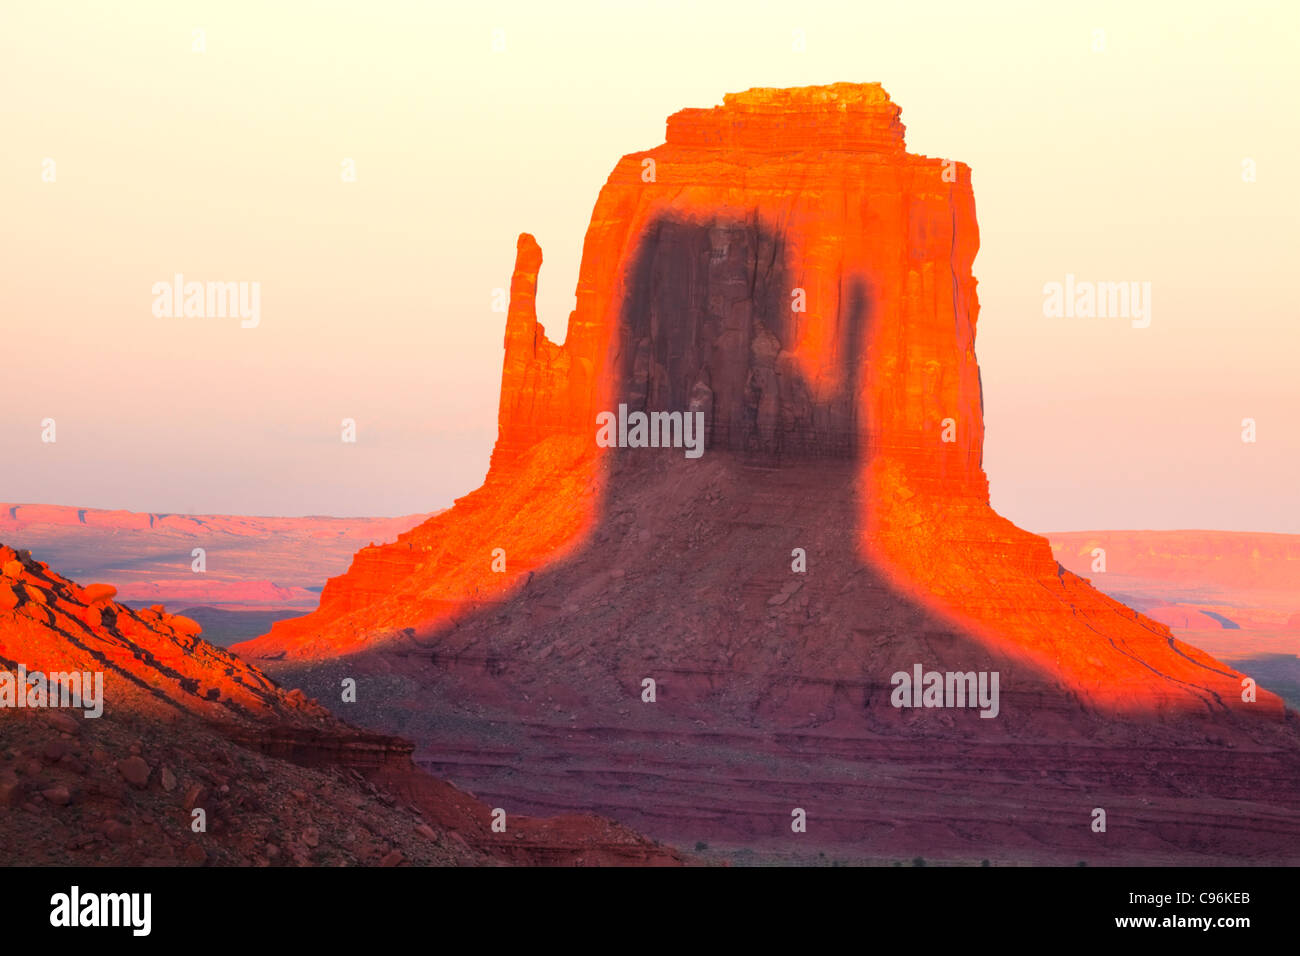 Este guante al atardecer, Monument Valley Tribal Park, Arizona y Utah Sombra de Occidente Mitten en East Mitten Imagen De Stock